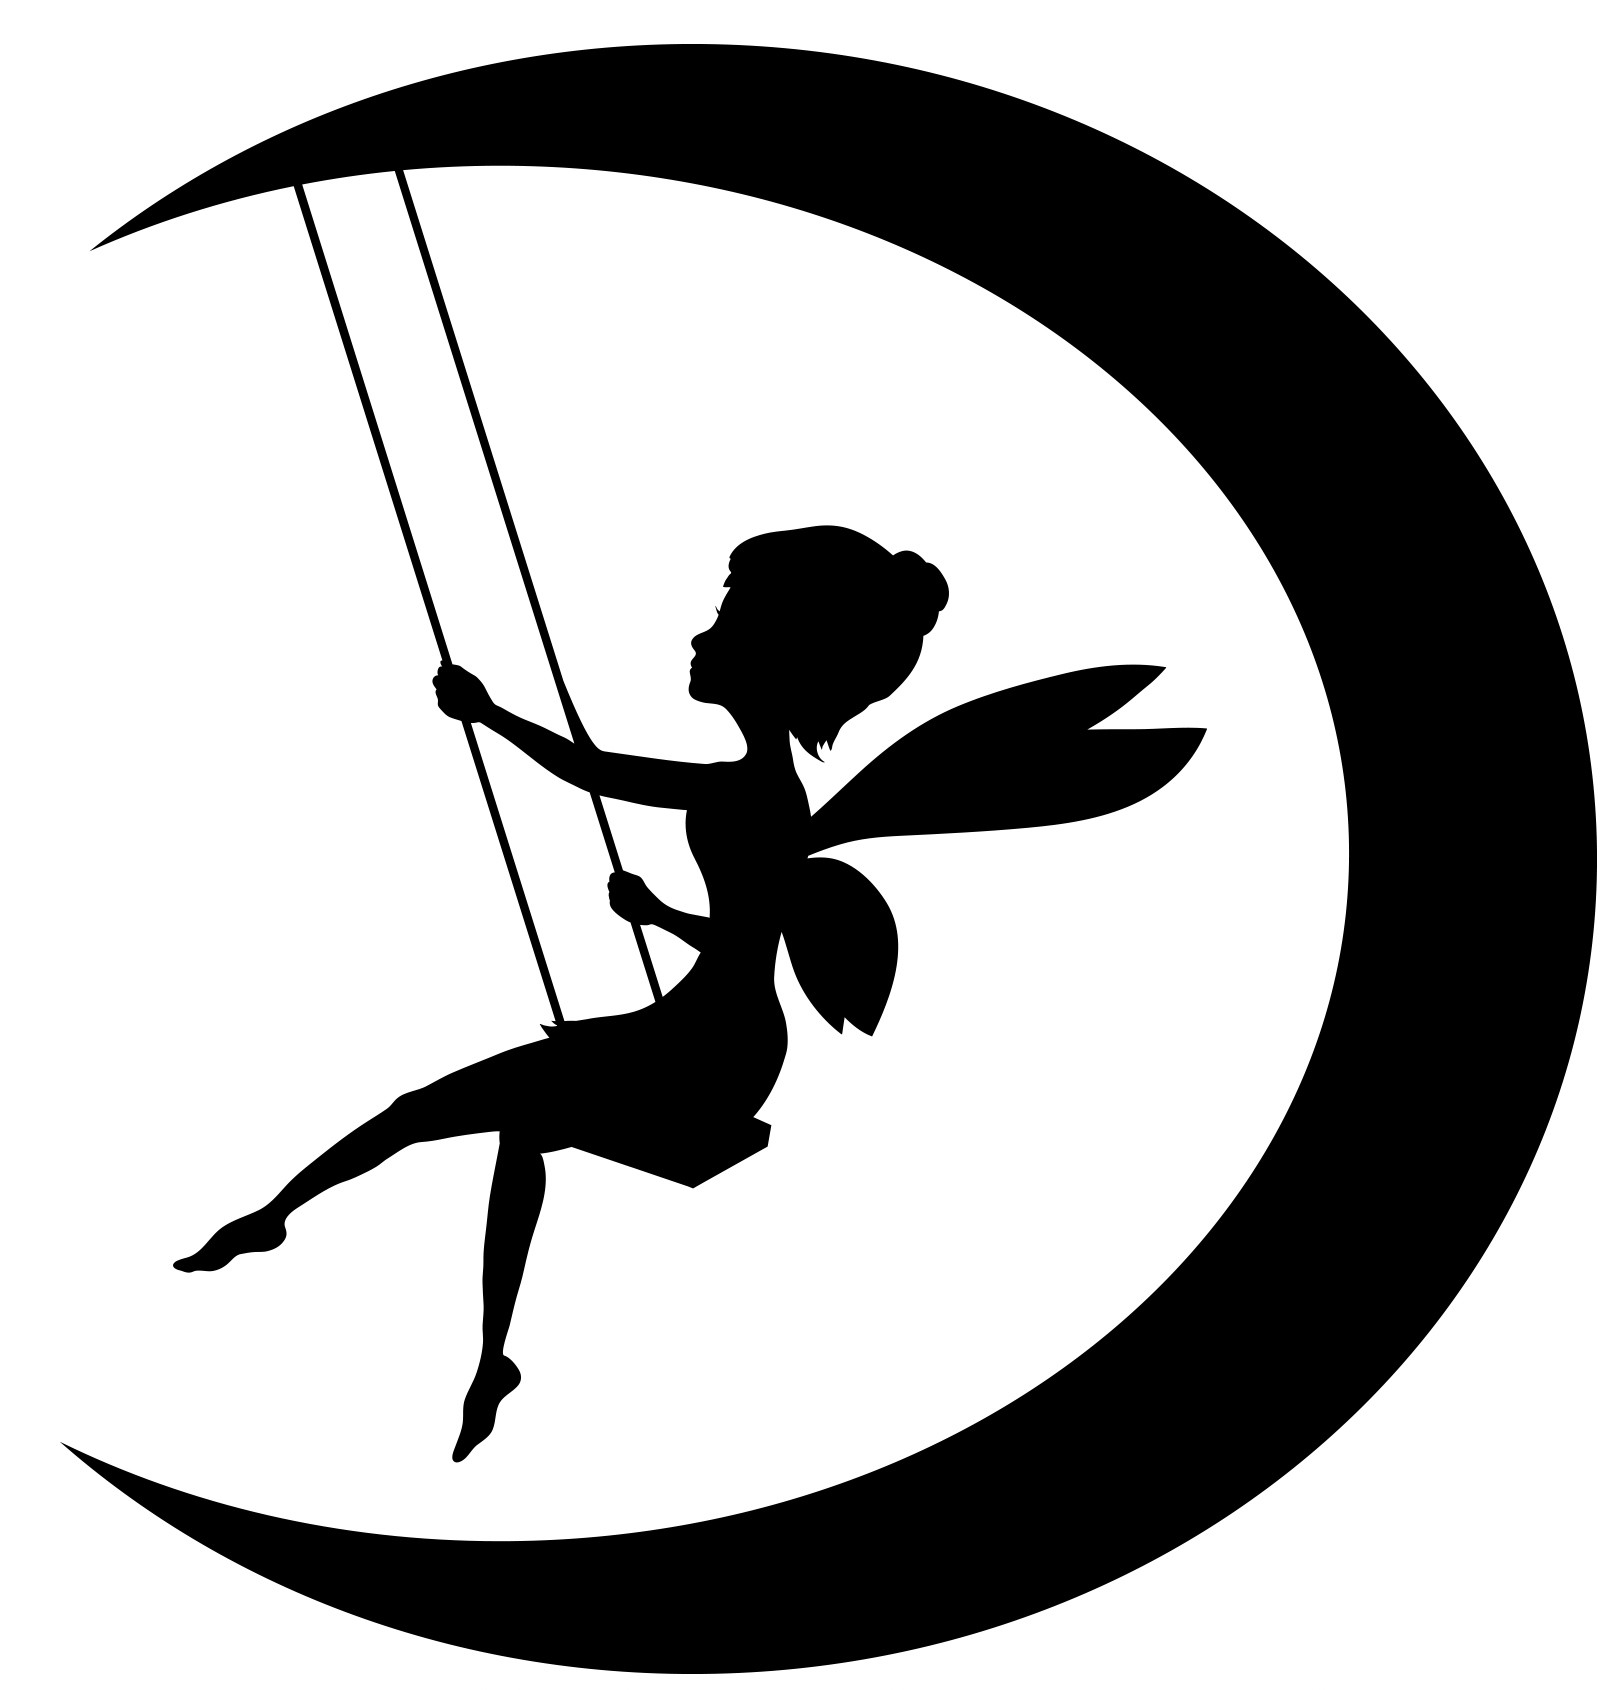 Shadow clipart tinkerbell Silhouette clipart collection For Fairy